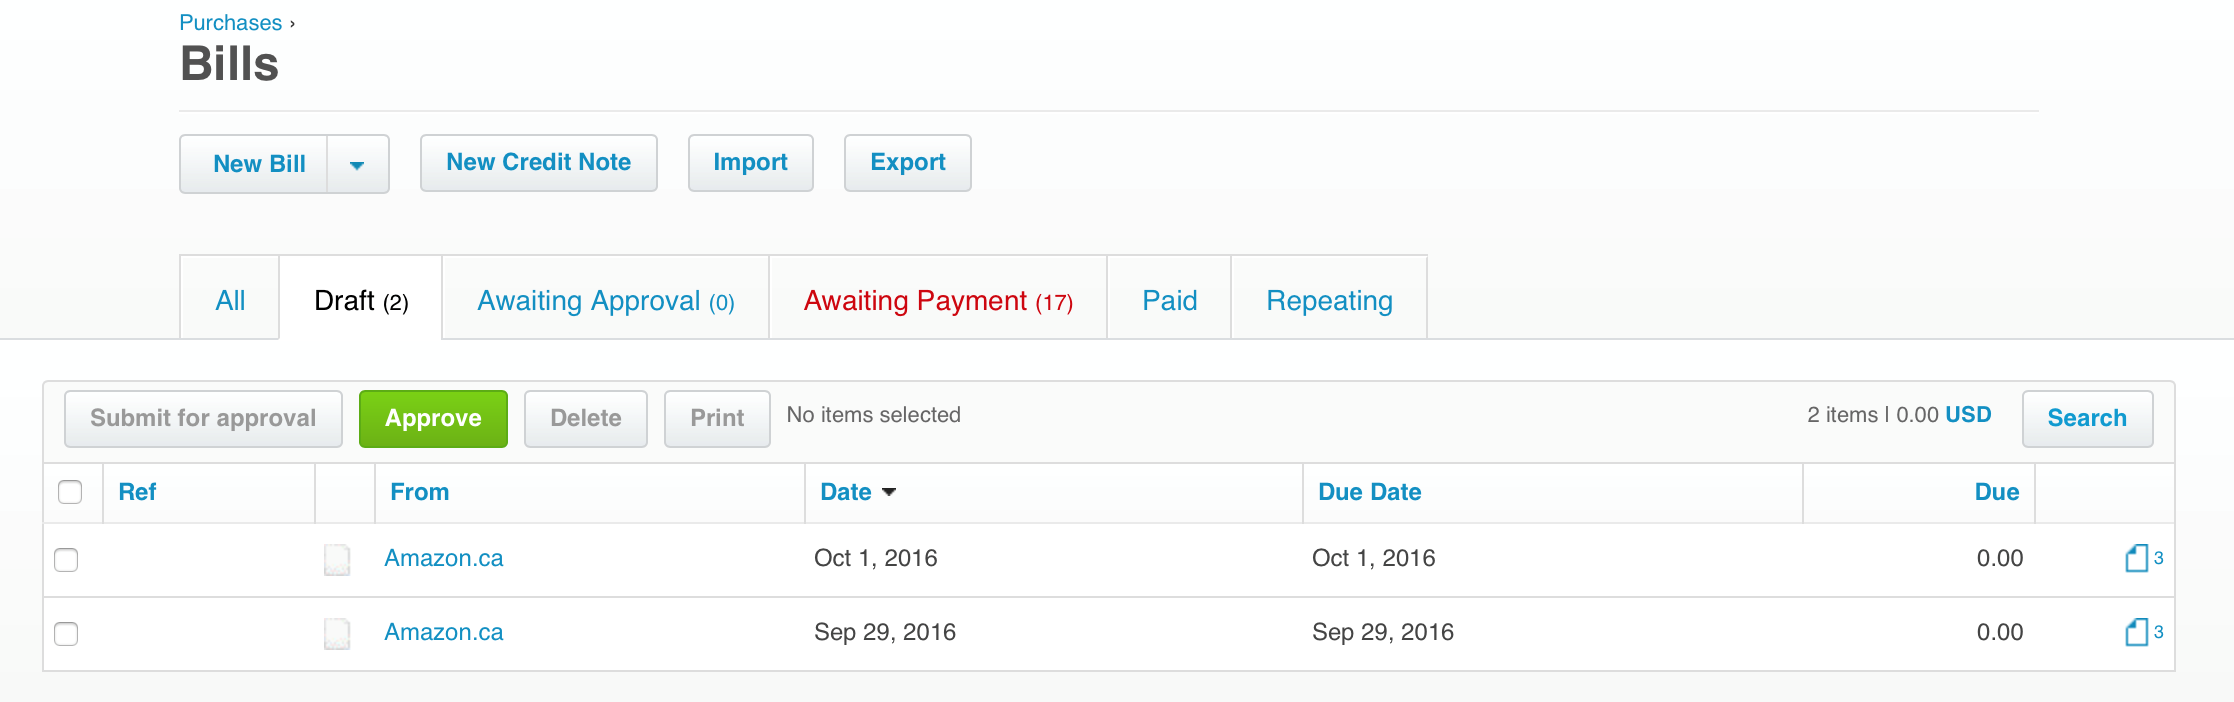 Overview Of Cost Of Goods Sold AX Support Center - What's the difference between invoice and msrp